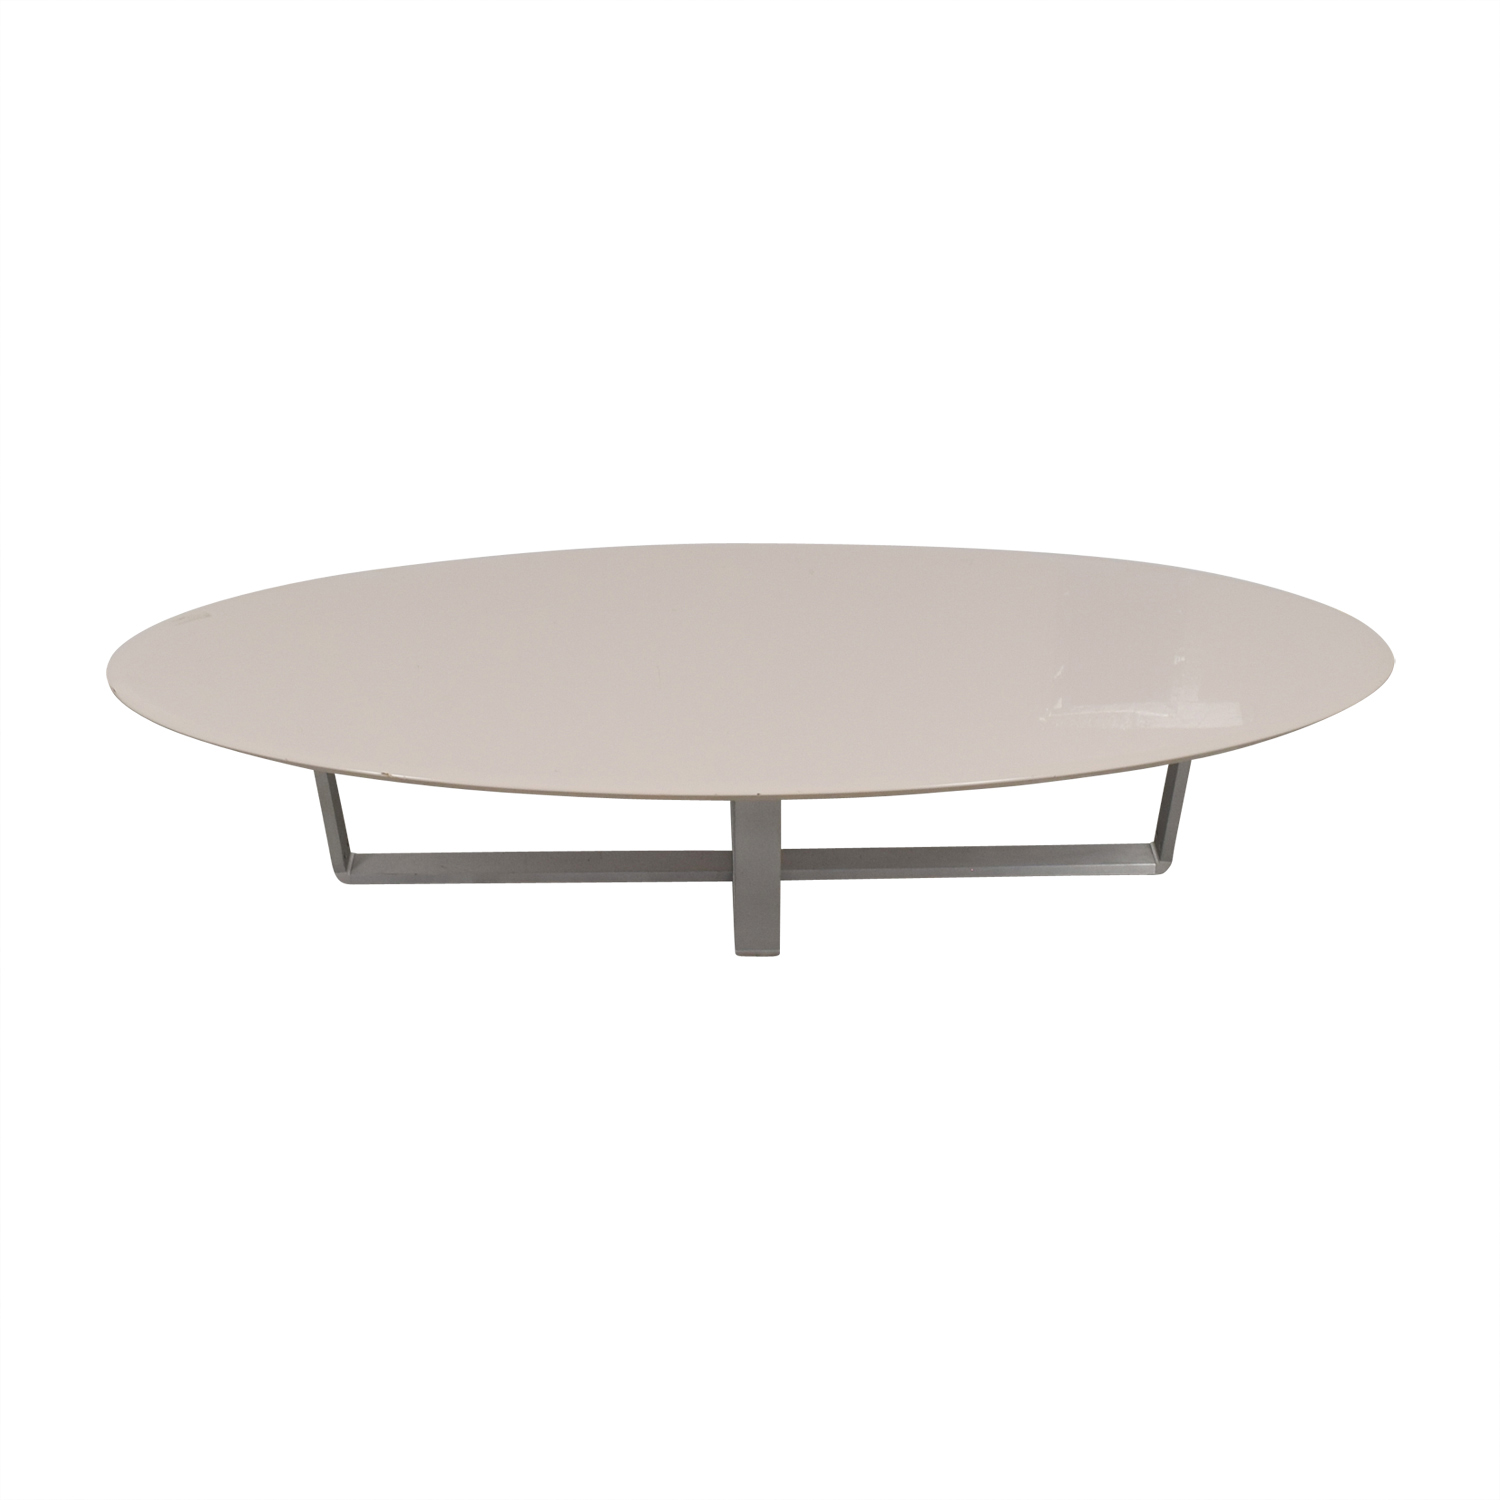 ... Argo Furniture Argo Furniture White Lacquer Oval Coffee Table ...